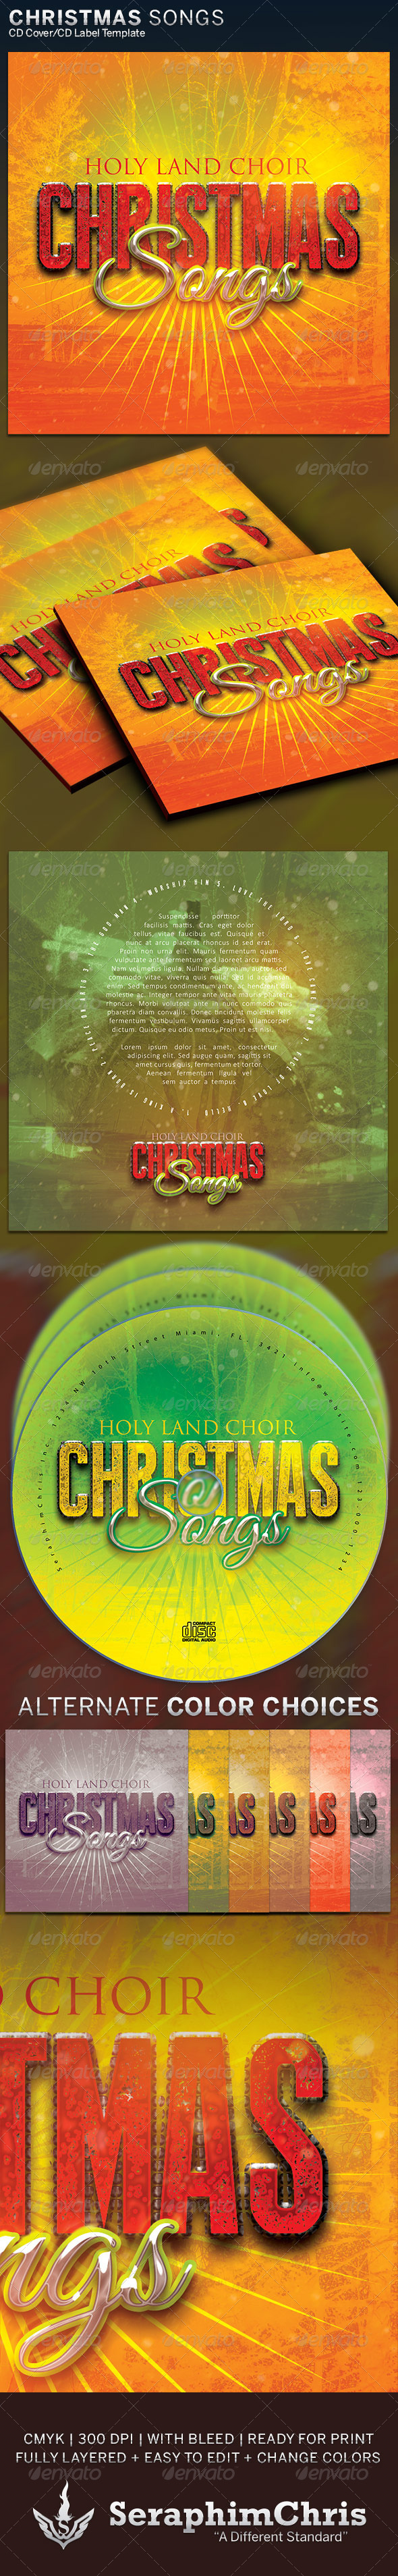 GraphicRiver Christmas Songs CD Cover Artwork Template 6309379